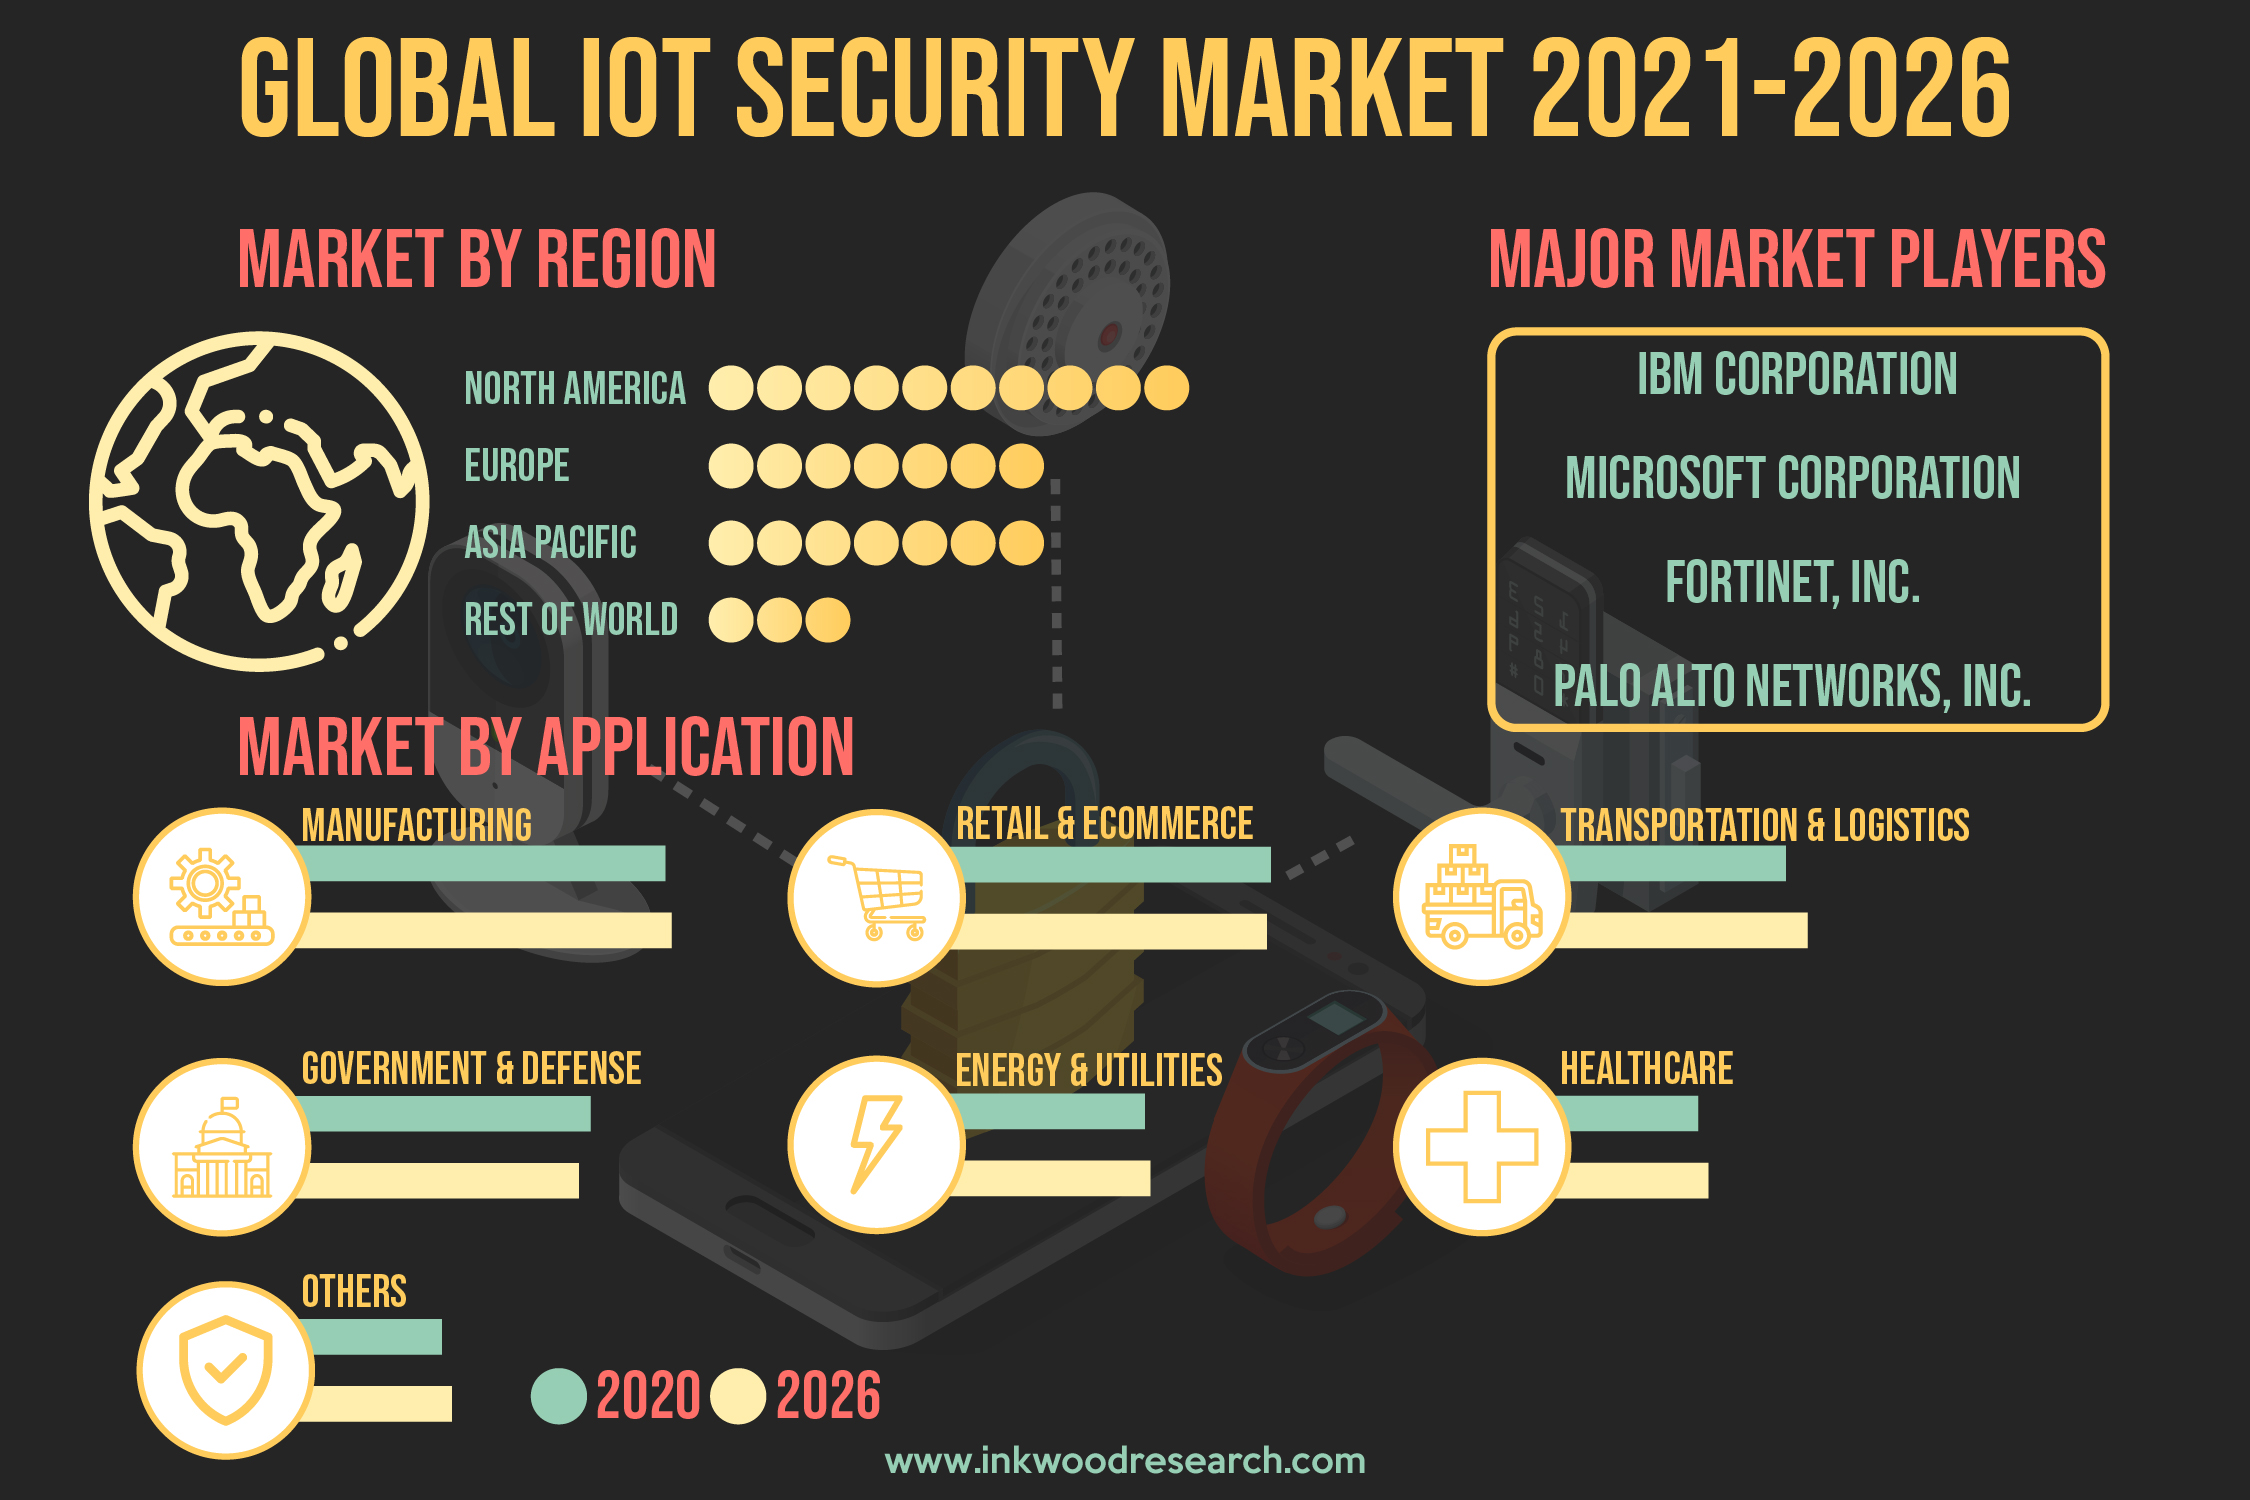 Rise in Cyber-attacks is creating Demand for IoT Security in the Global Market